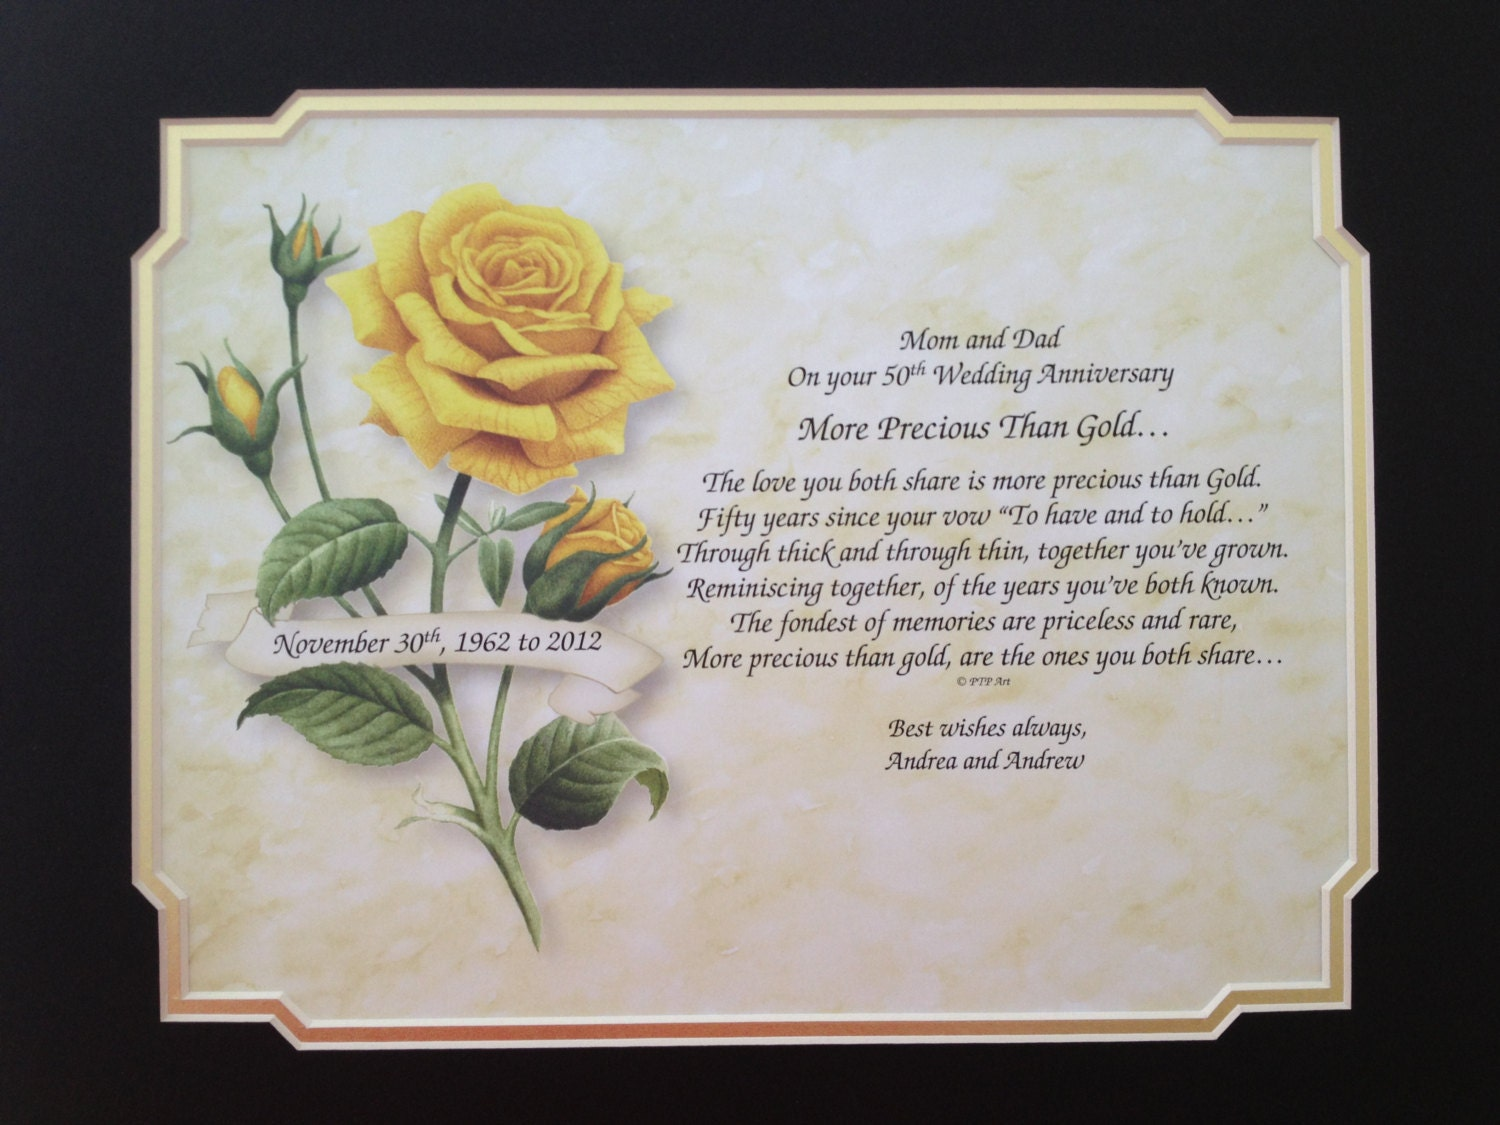 Wedding Anniversary Gift Parents: 50th ANNIVERSARY Gift Idea Personalized Poem By